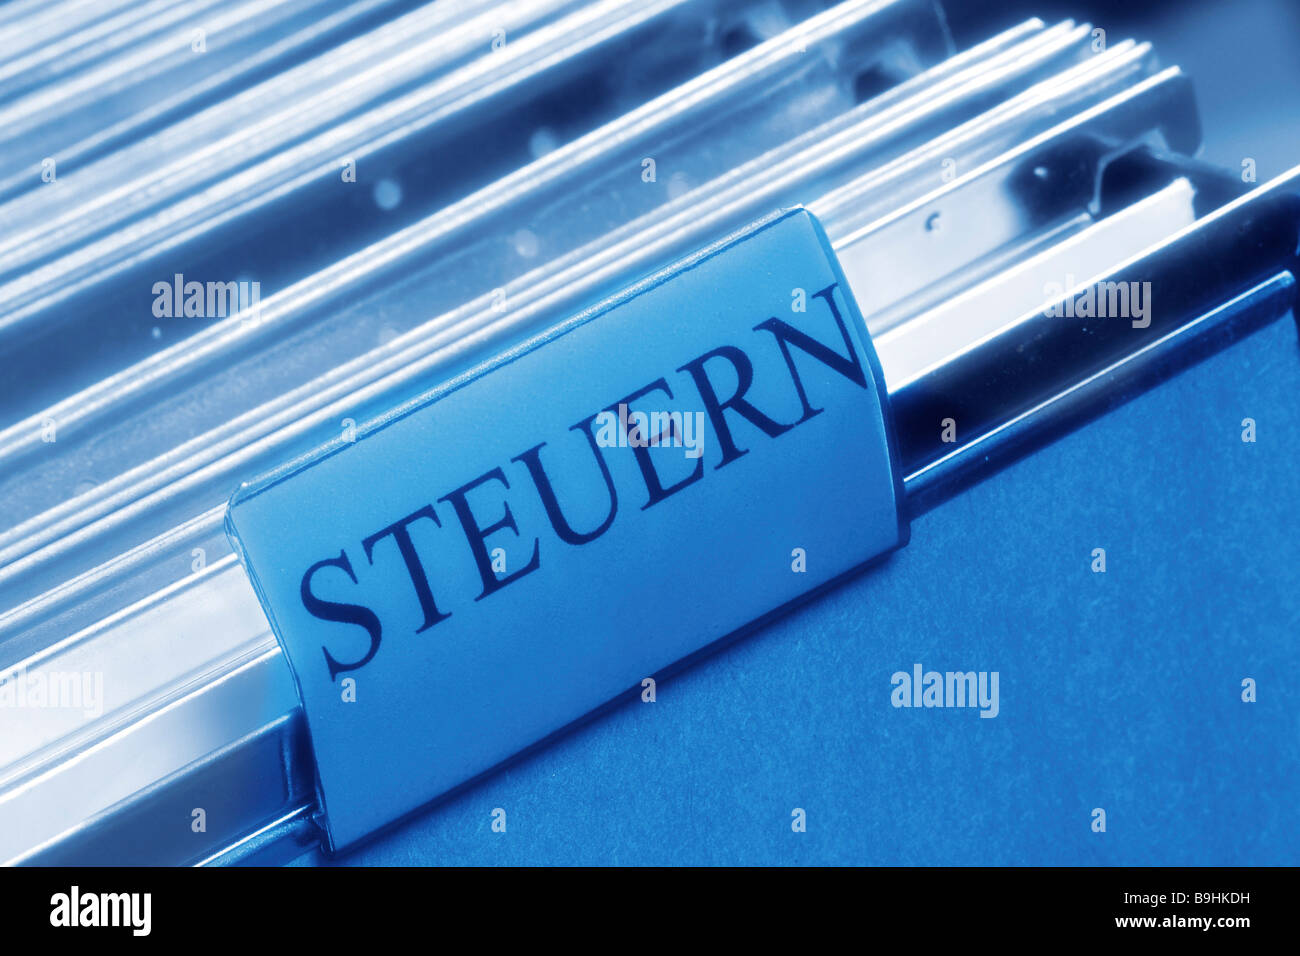 Steuern, German for taxes, in a file - Stock Image